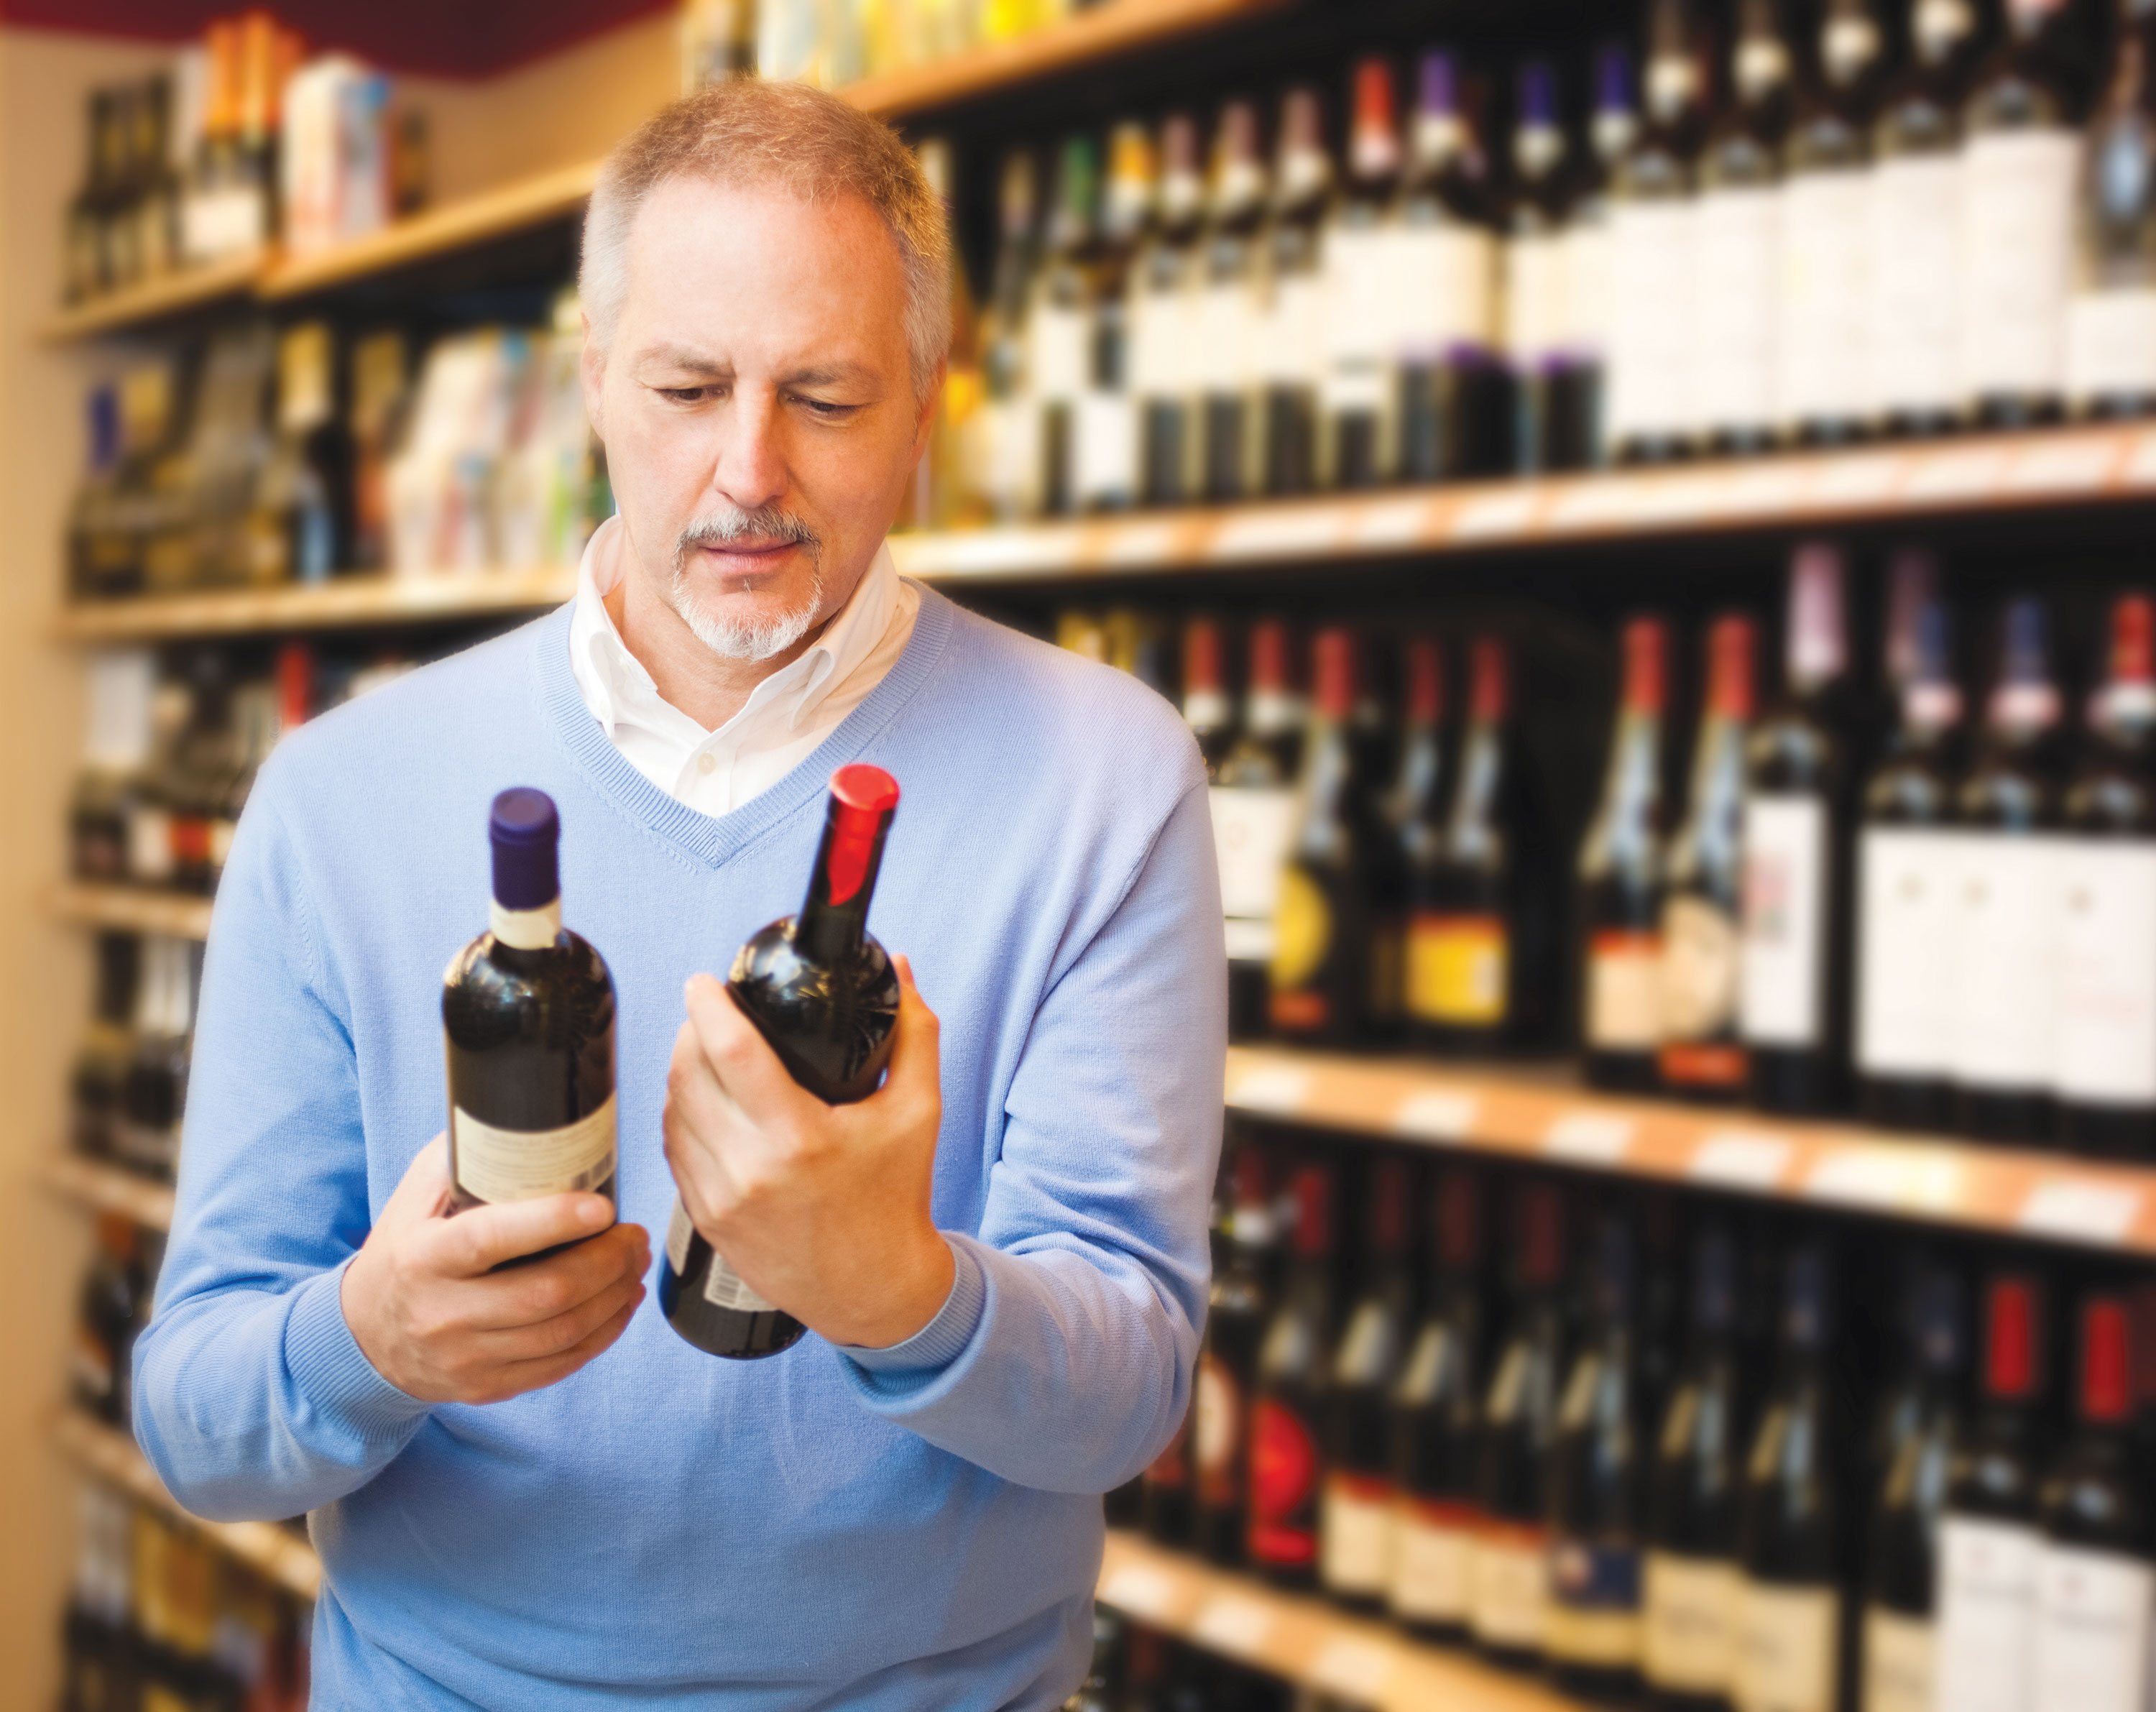 5 Real World Rules for Buying Wine